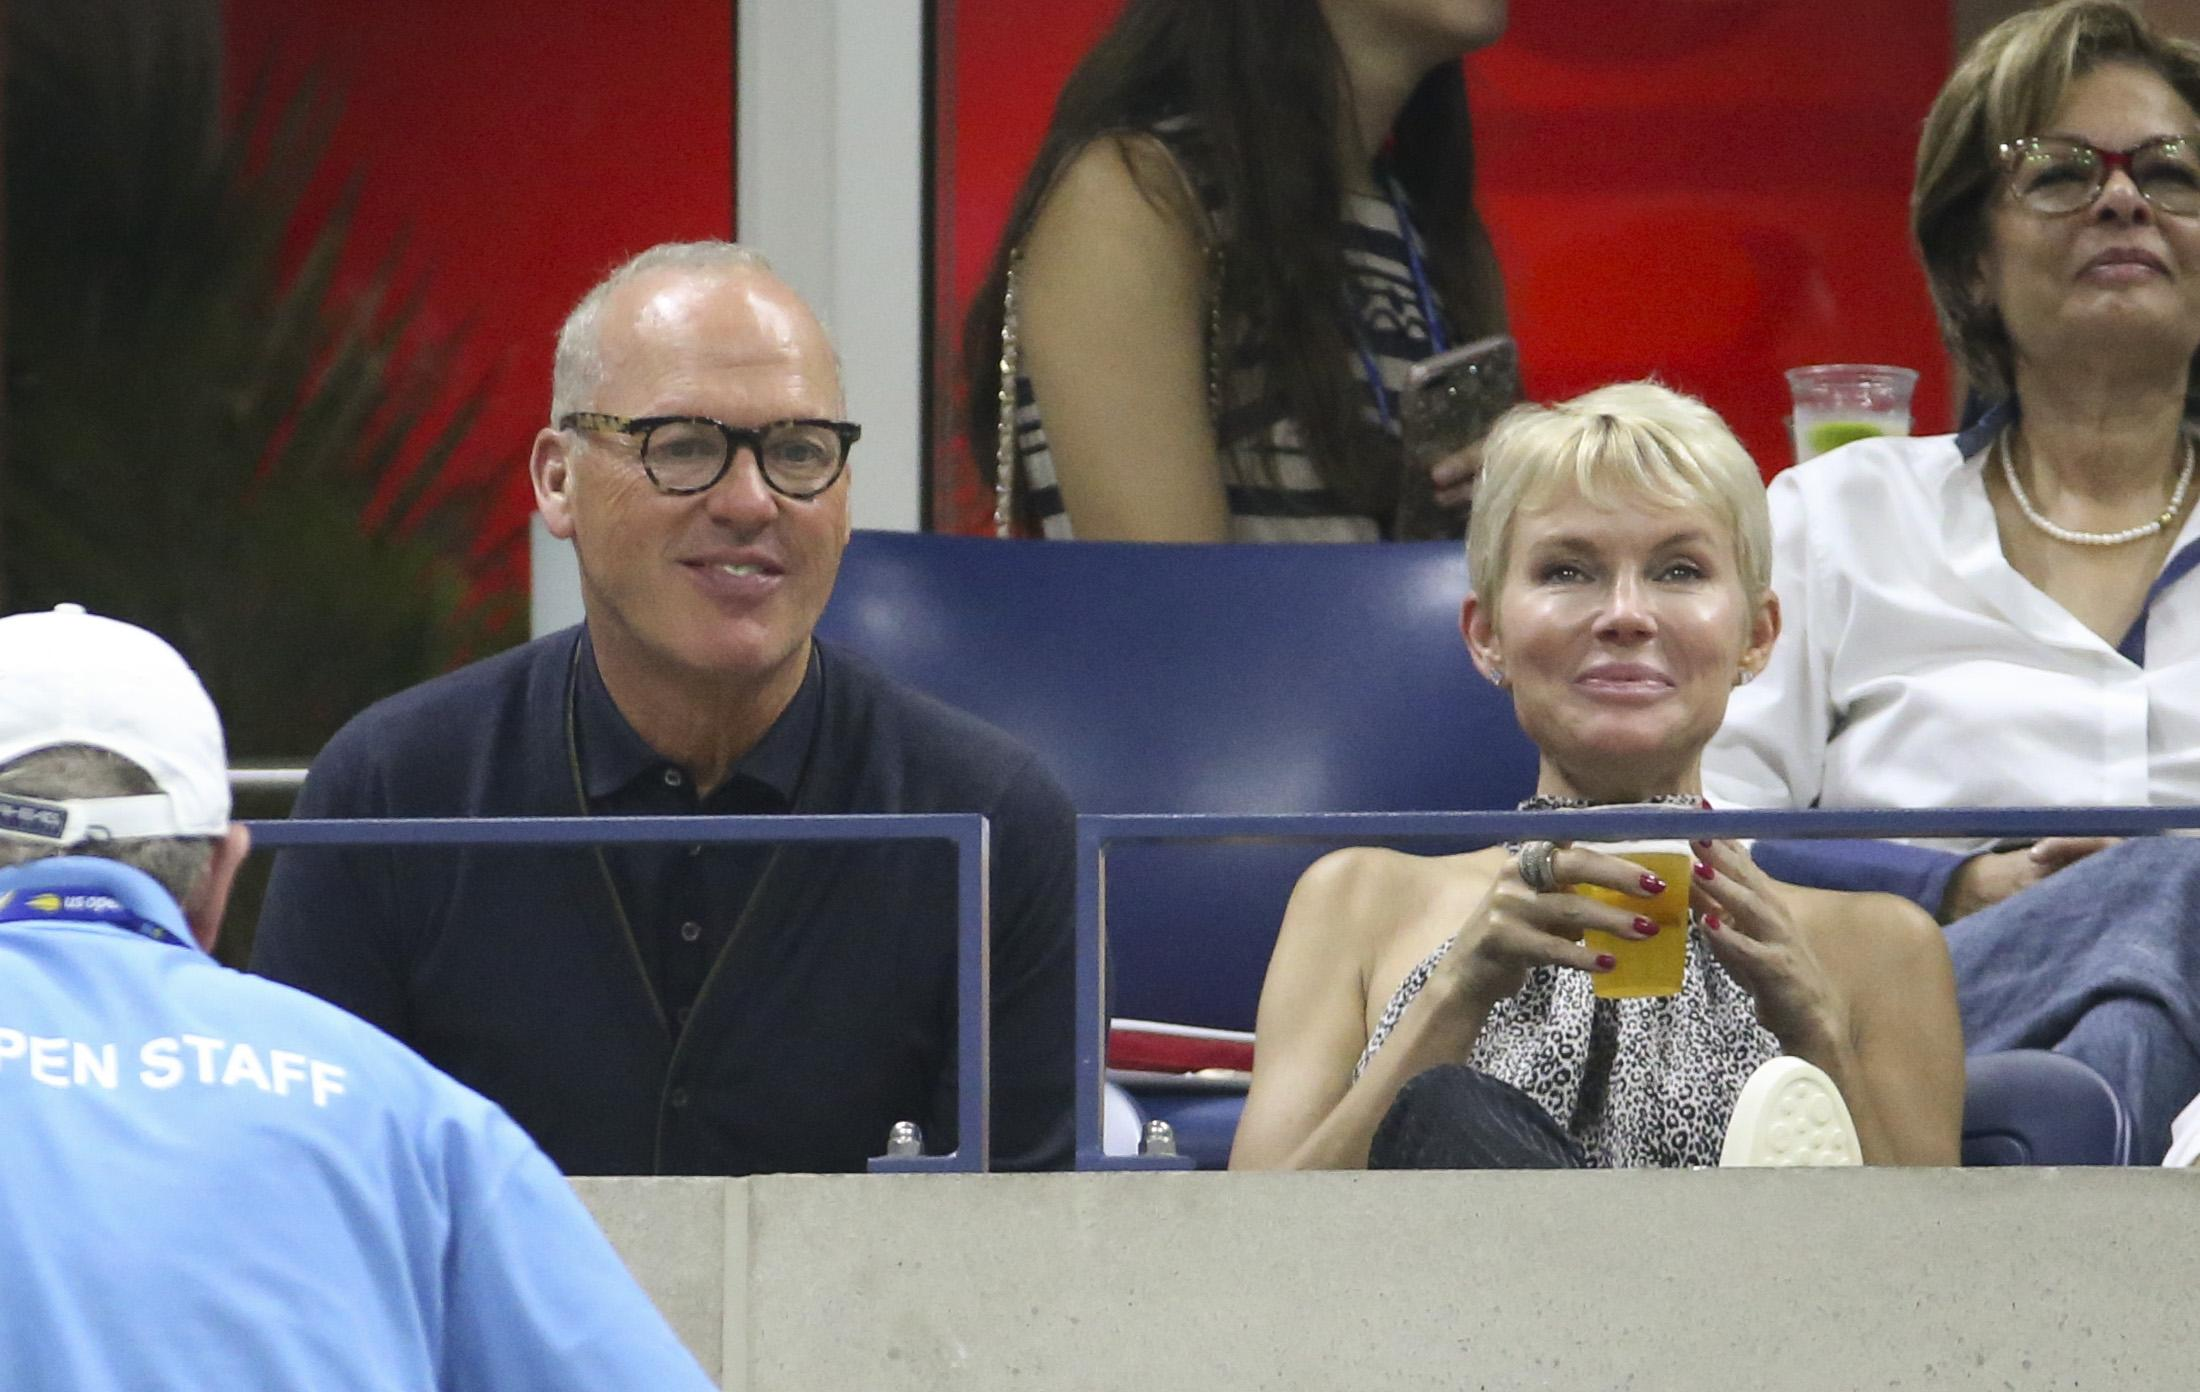 Actor Michael Keaton watches Serena Williams in action at the US Open